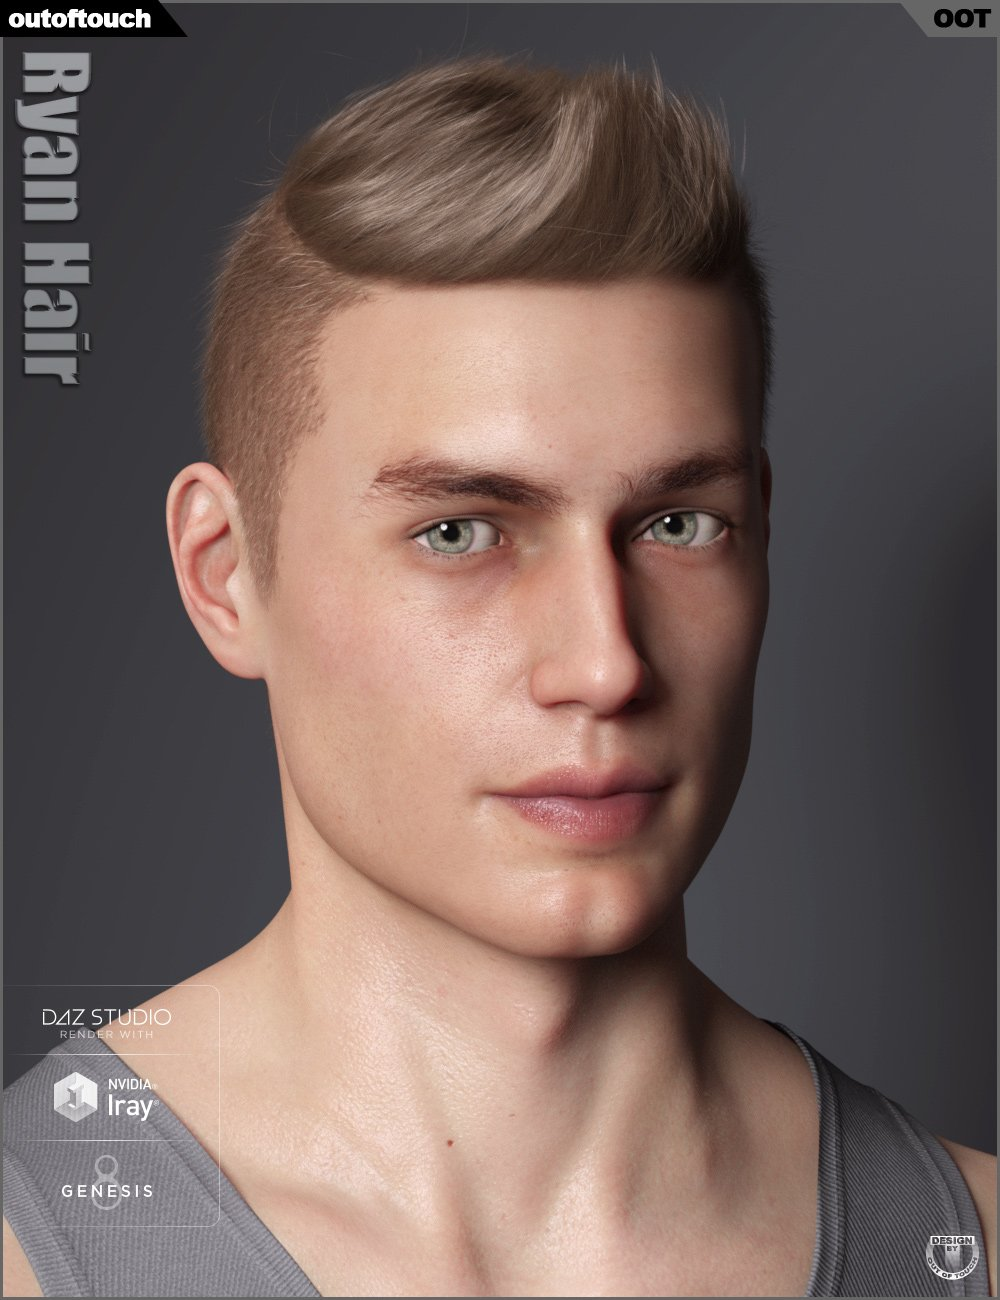 Ryan Hair for Genesis 3 and 8 by: outoftouch, 3D Models by Daz 3D